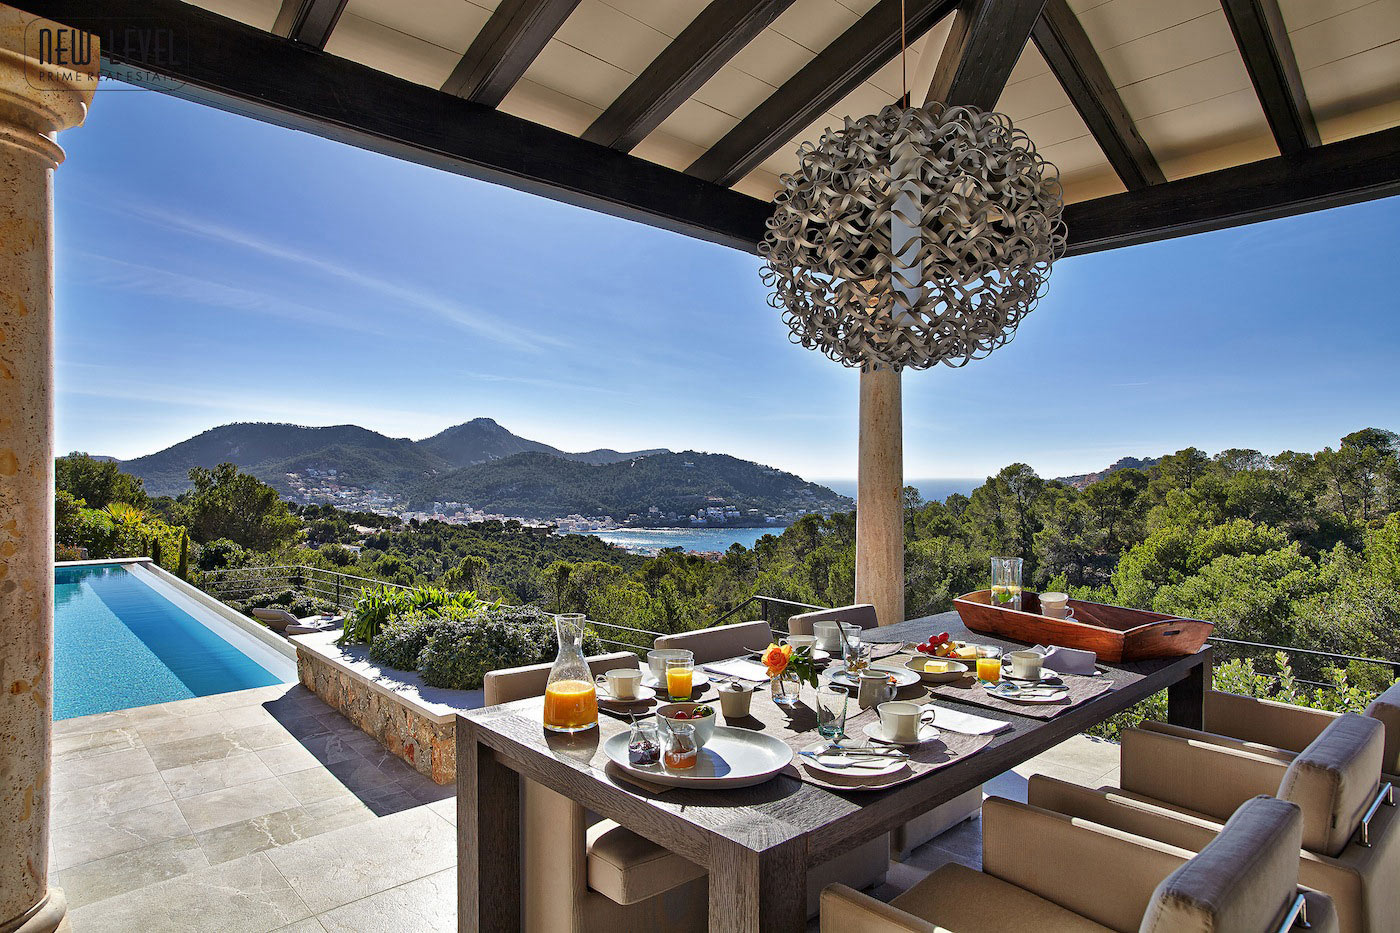 Outdoor Dining, Sea Views, Lighting, Fabulous Villa in Puerto de Andratx, Mallorca